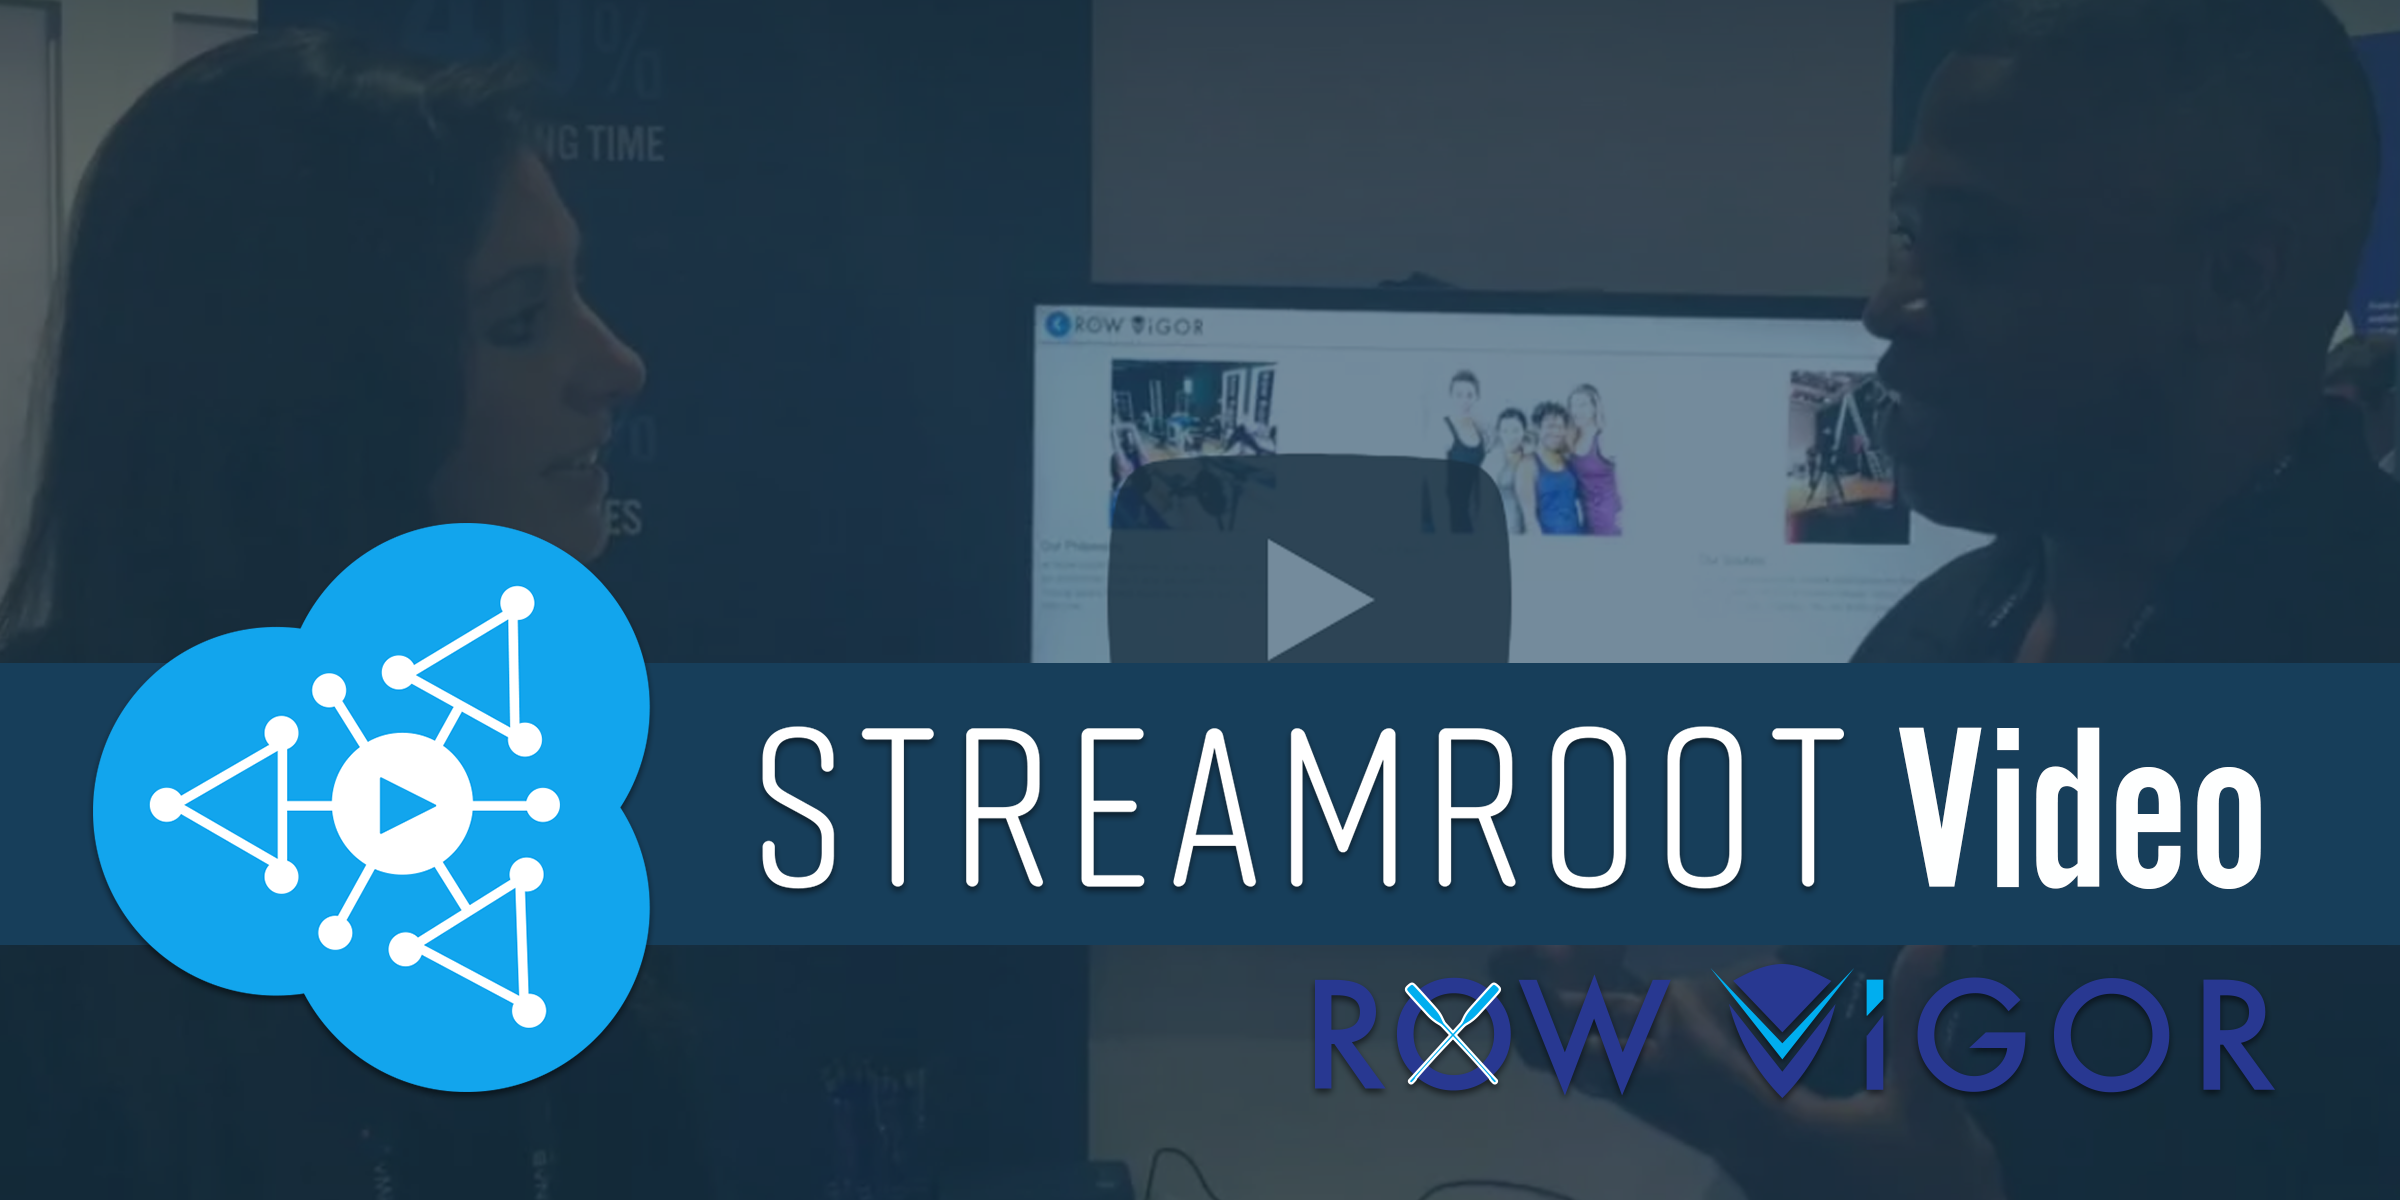 Streamroot video Rowvigor